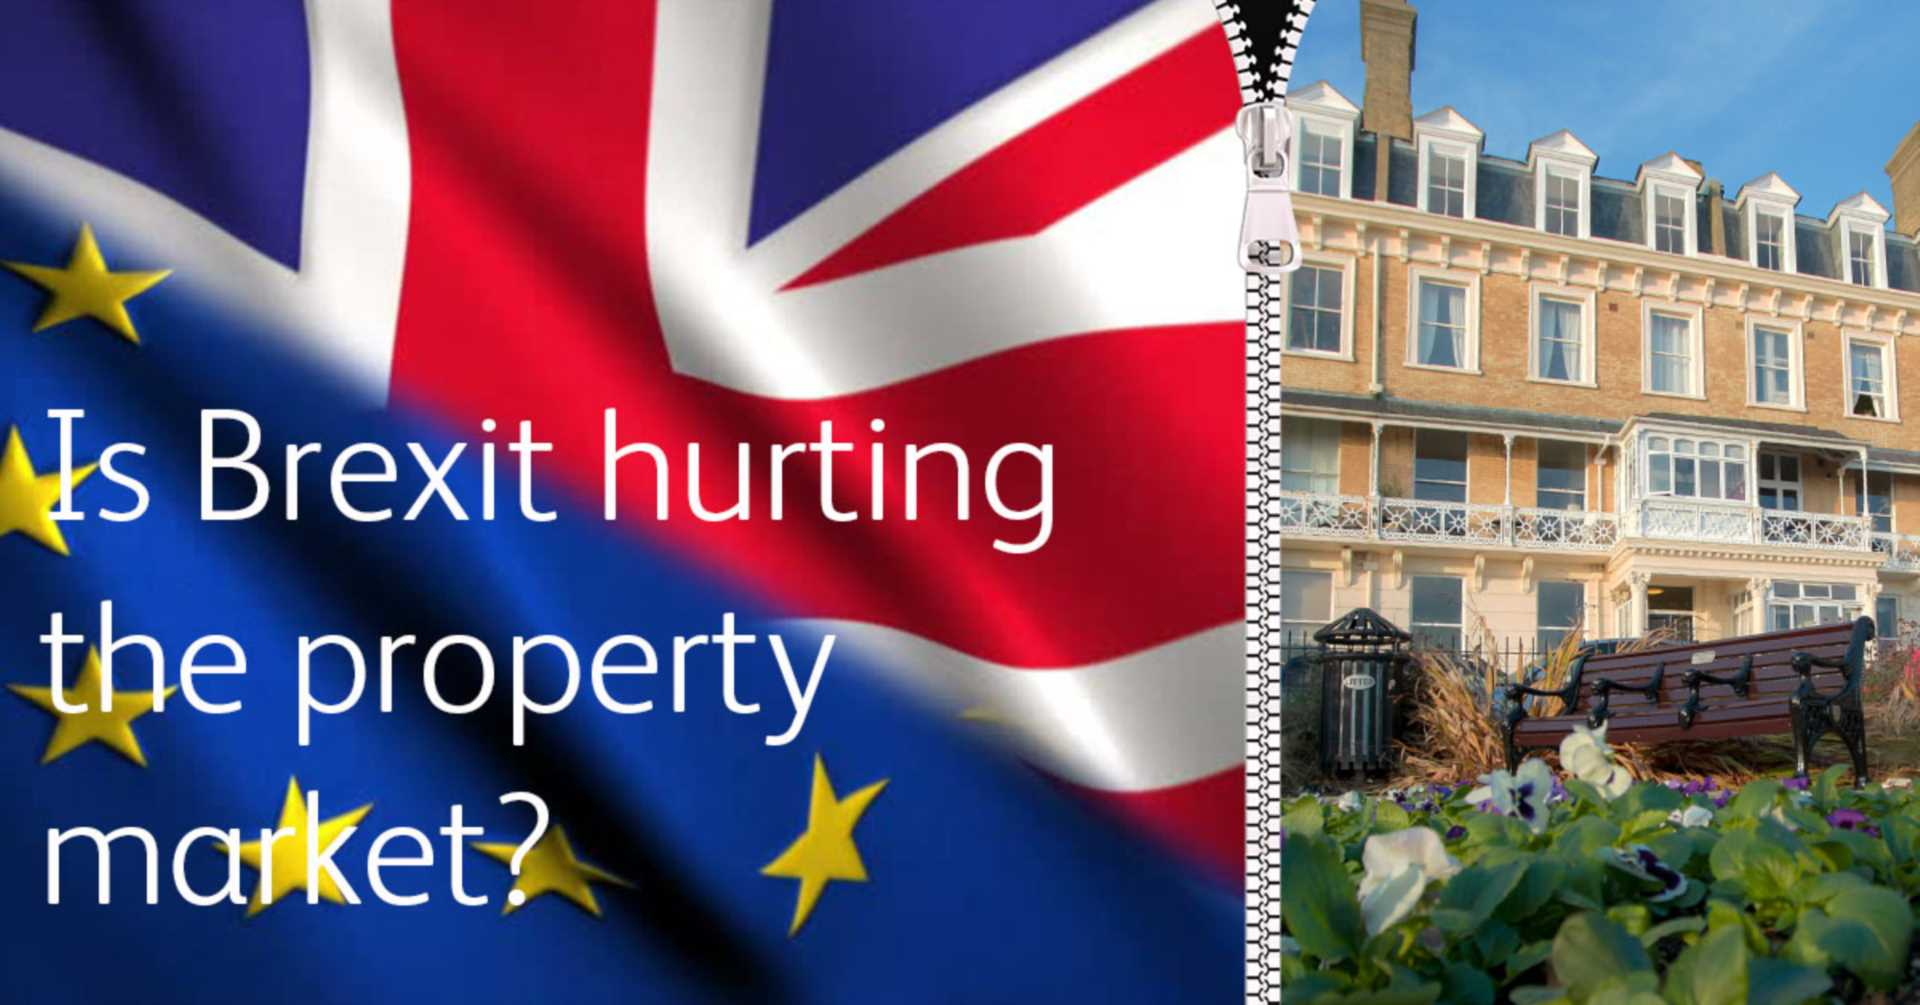 Is Brexit Hurting The Property Market?